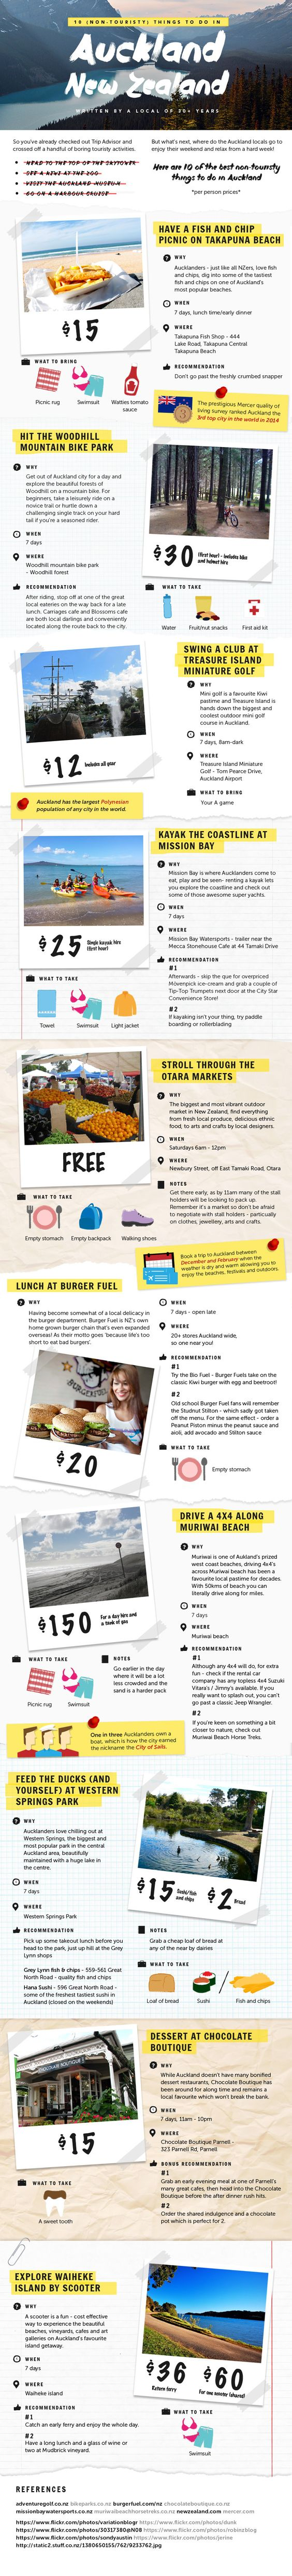 10 (Non-Touristy) Things to Do in Auckland New Zealand #infographic #Travel #Auckland